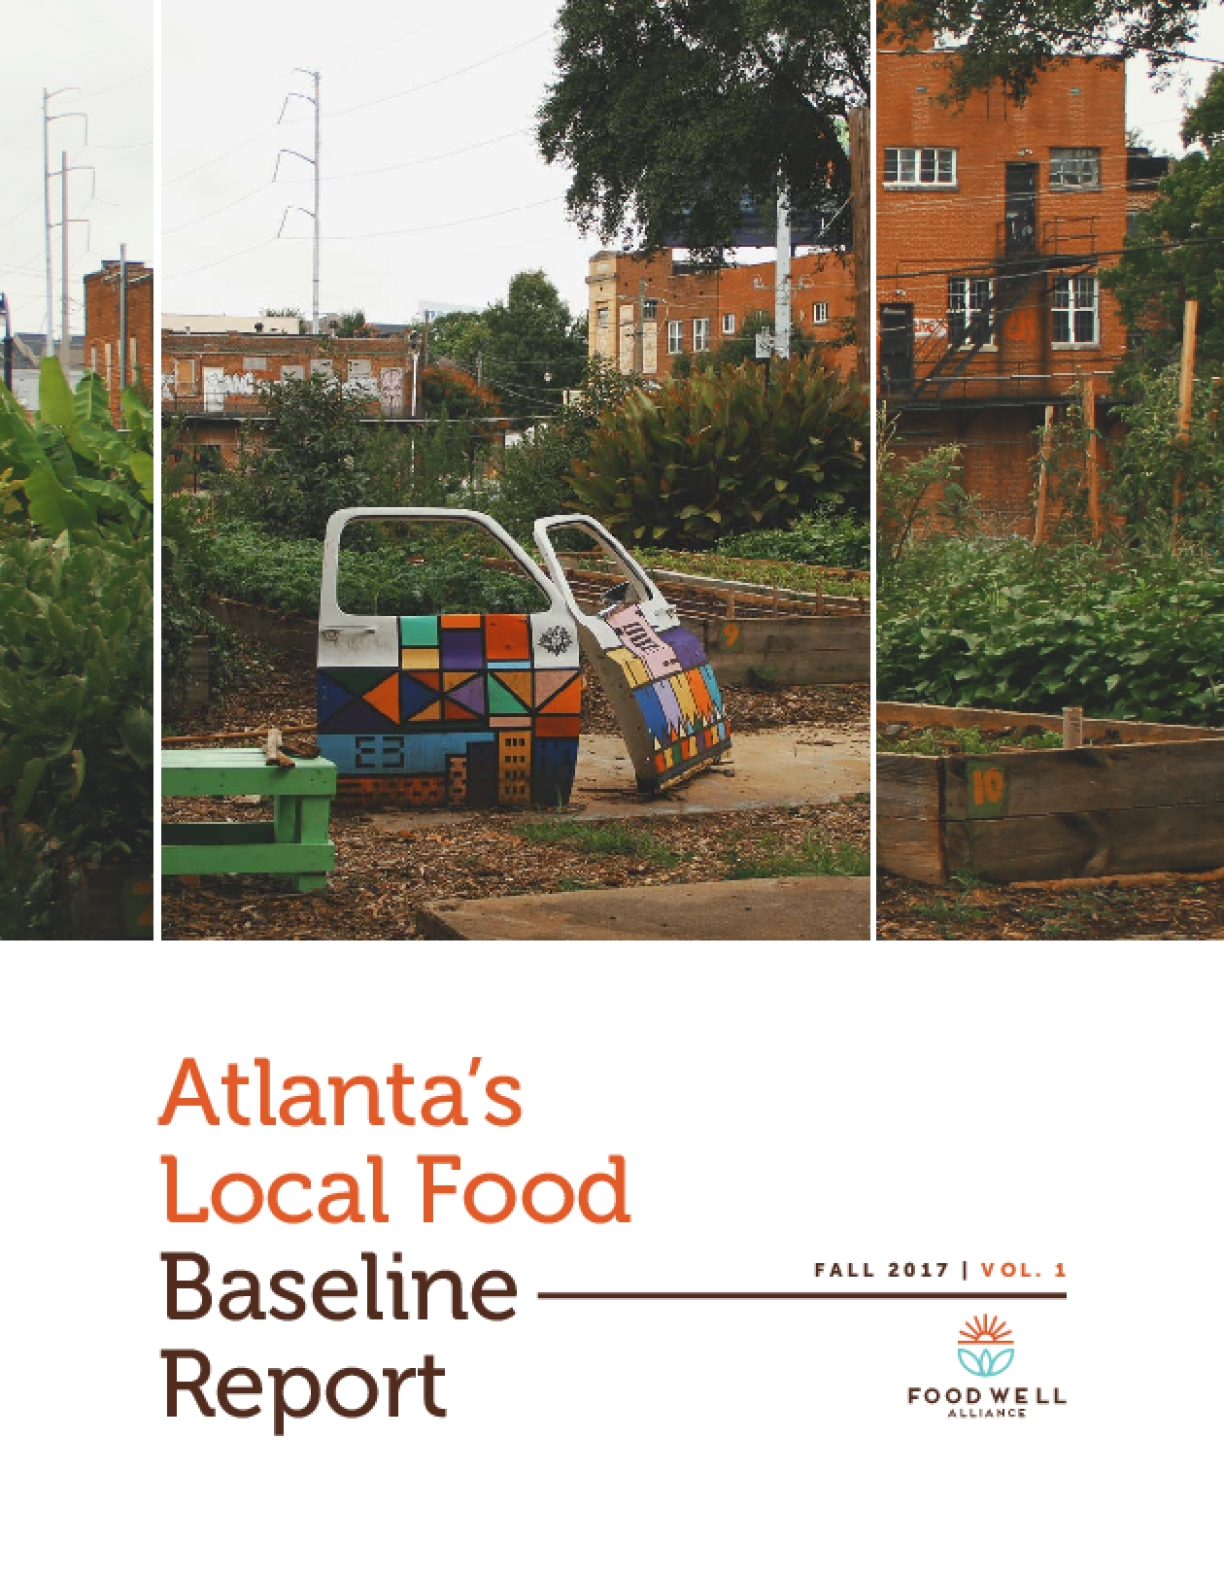 Atlanta's Local Food Baseline Report